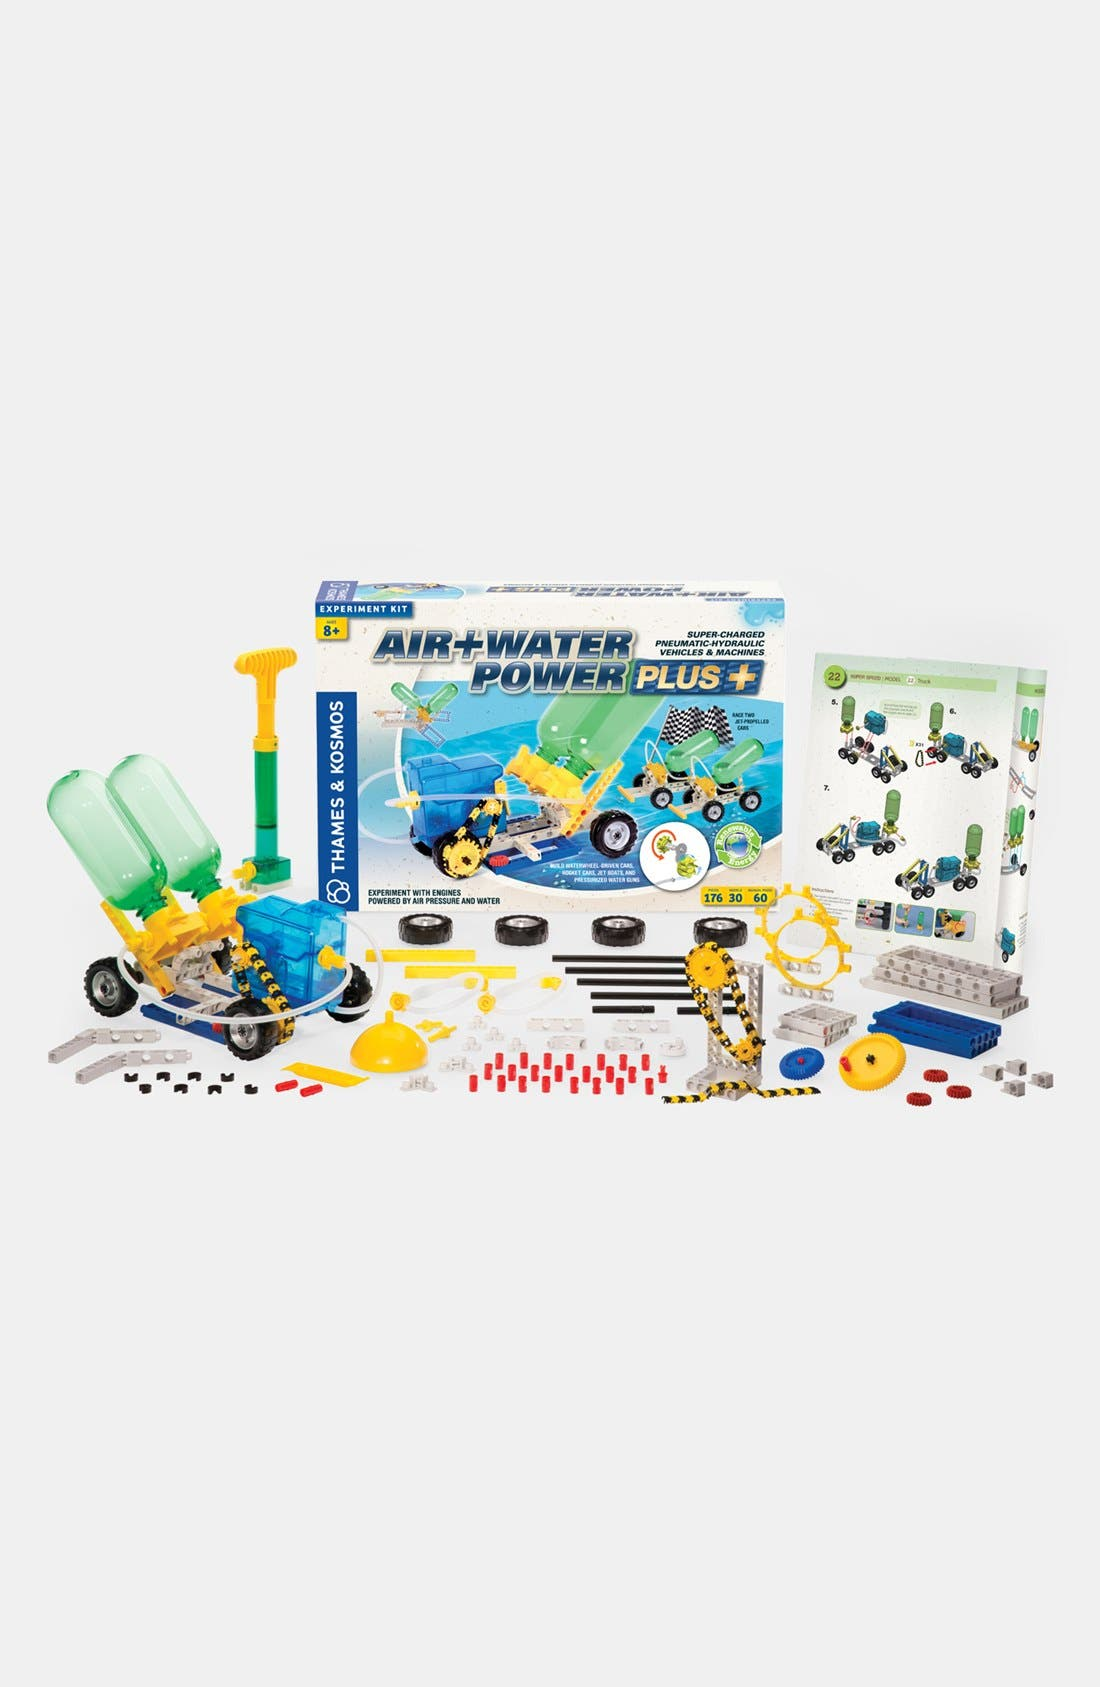 Thames & Kosmos 'Air+Water Power Plus' Building Set